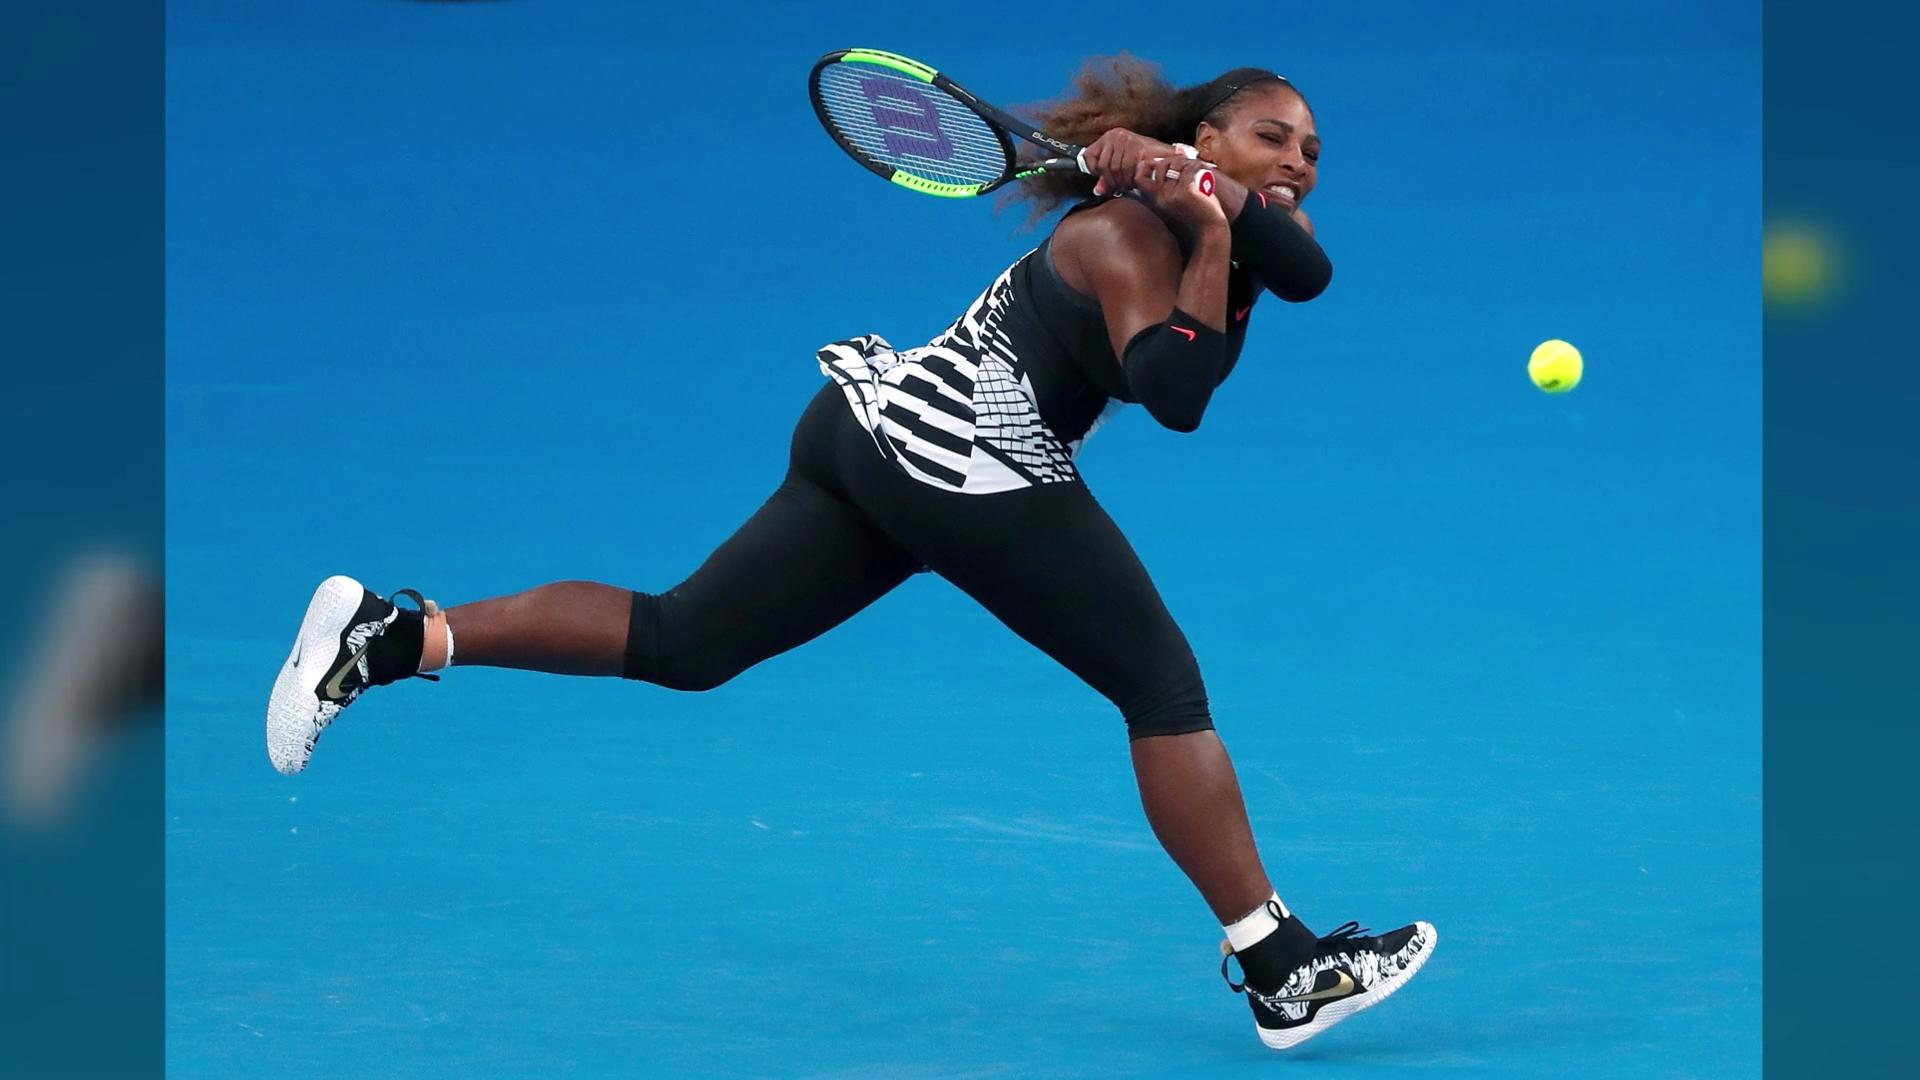 Serena Williams's GQ Woman of the Year Cover Has Ignited Controversy on Twitter